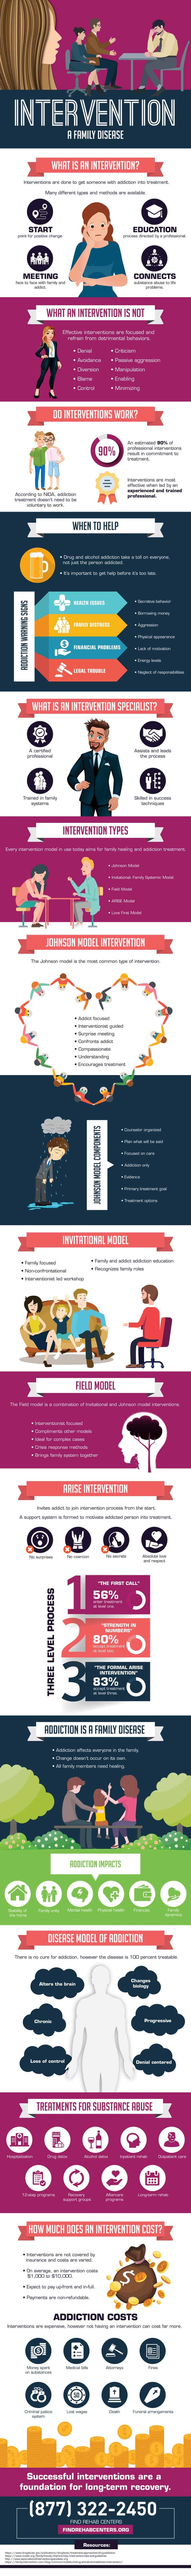 Why Intervention is Critical in the Treatment of Addictions - Infographic